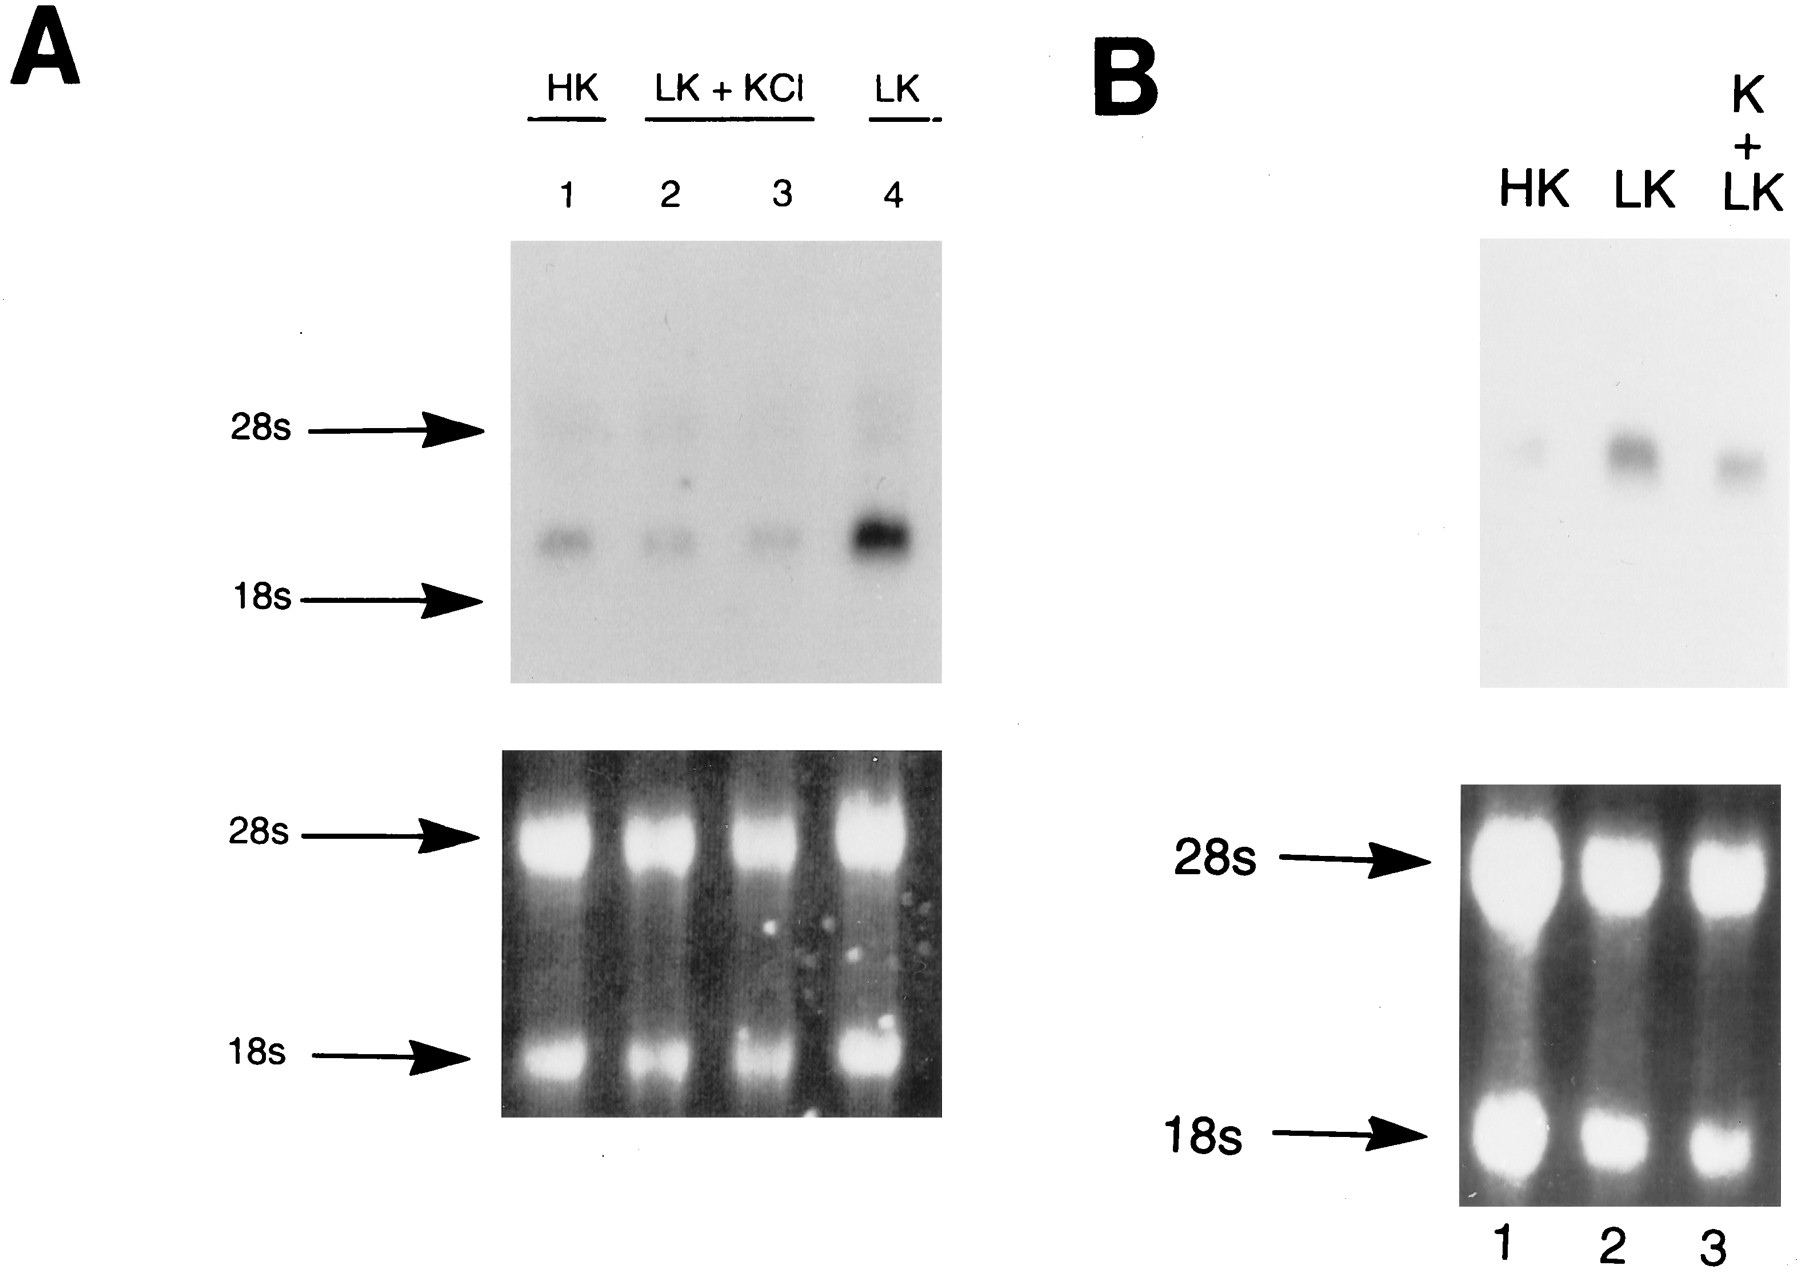 Cloning and Expression of a Rat Brain Interleukin-1β